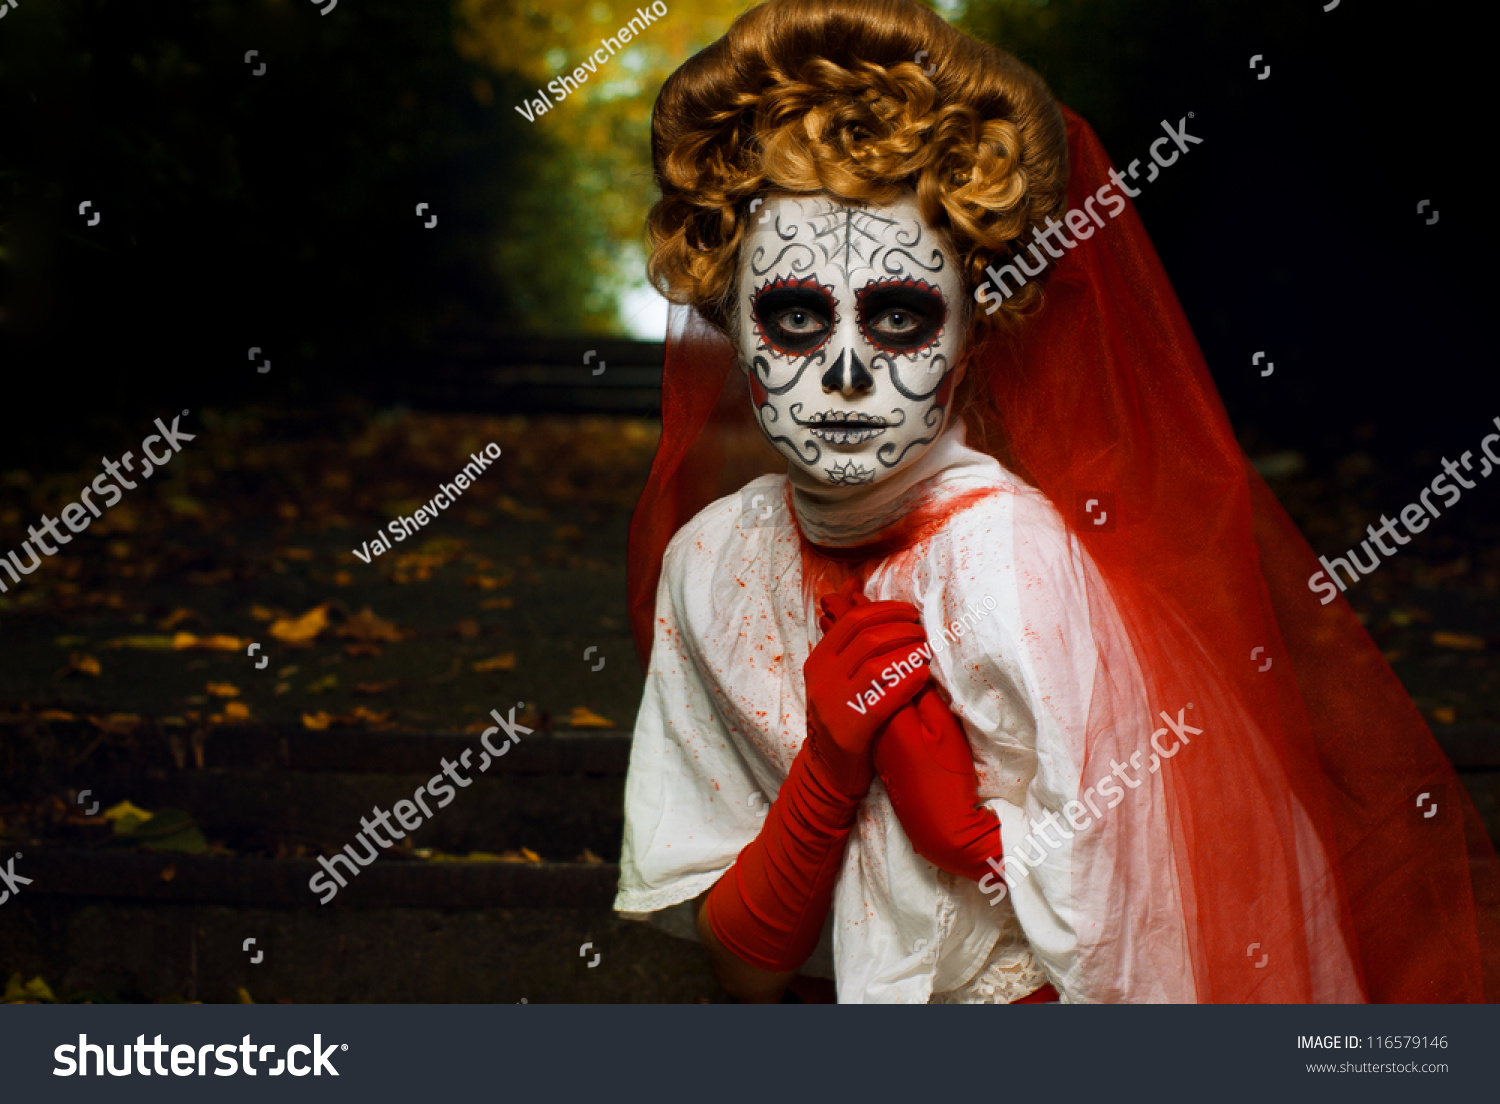 Young Woman Day Dead Mask Skull Stock Photo 116579146 - Shutterstock